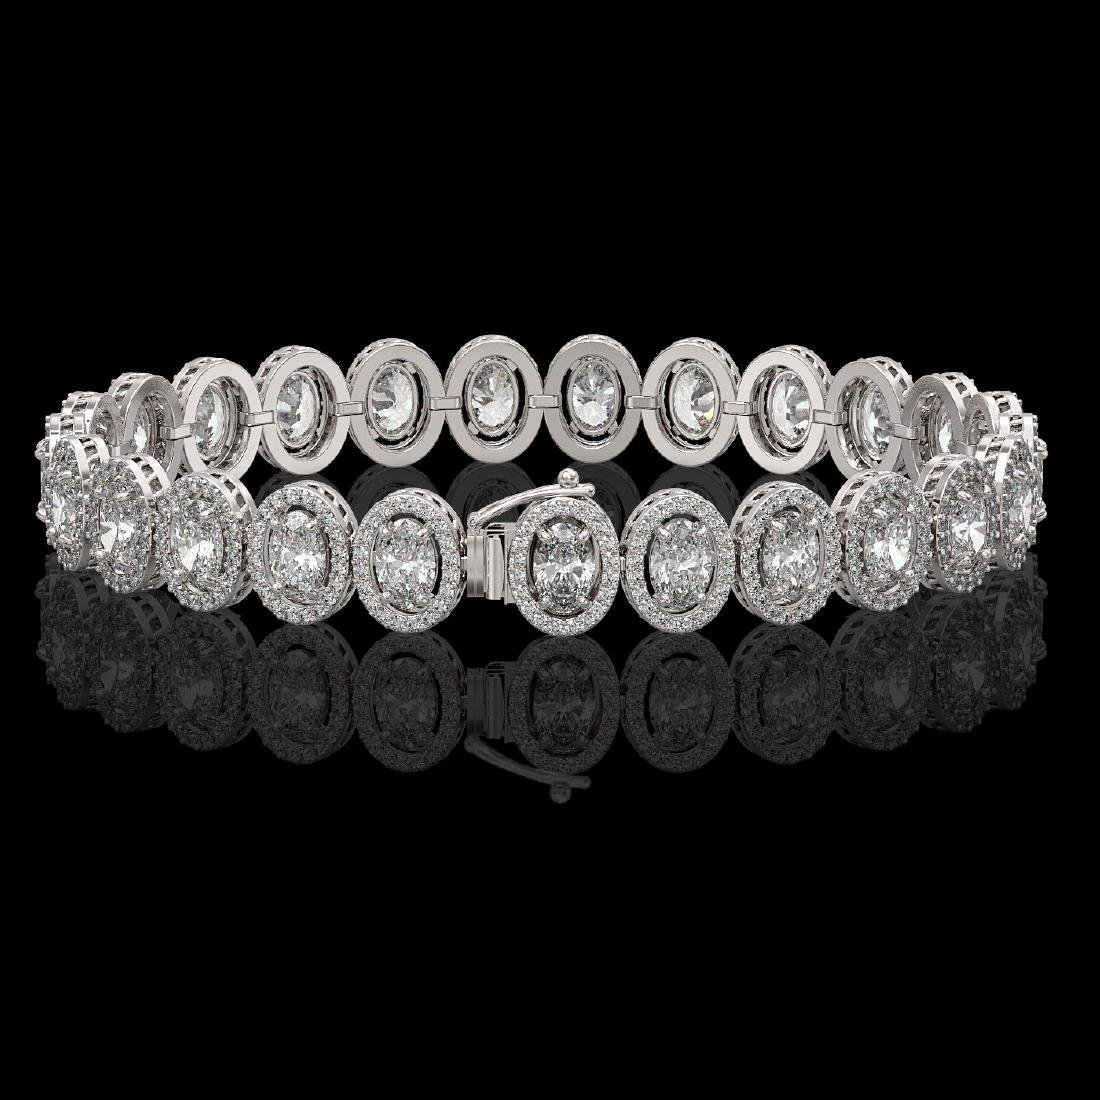 15.8 CTW Oval Diamond Designer Bracelet 18K White Gold - 2